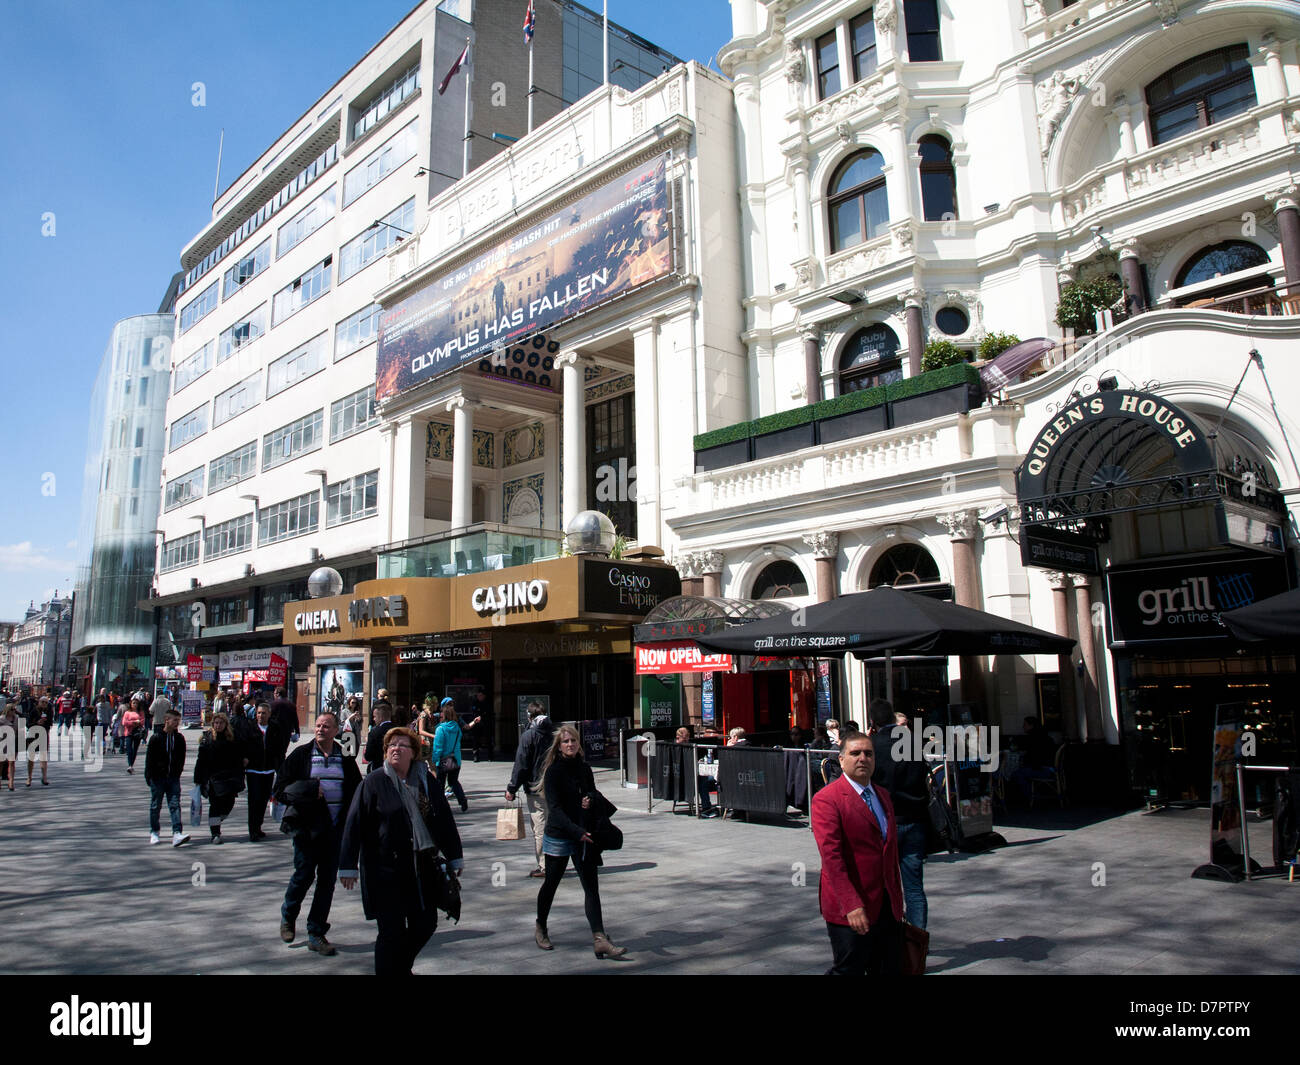 Cinema in Leicester Square, West End, London, England, United Kingdom - Stock Image